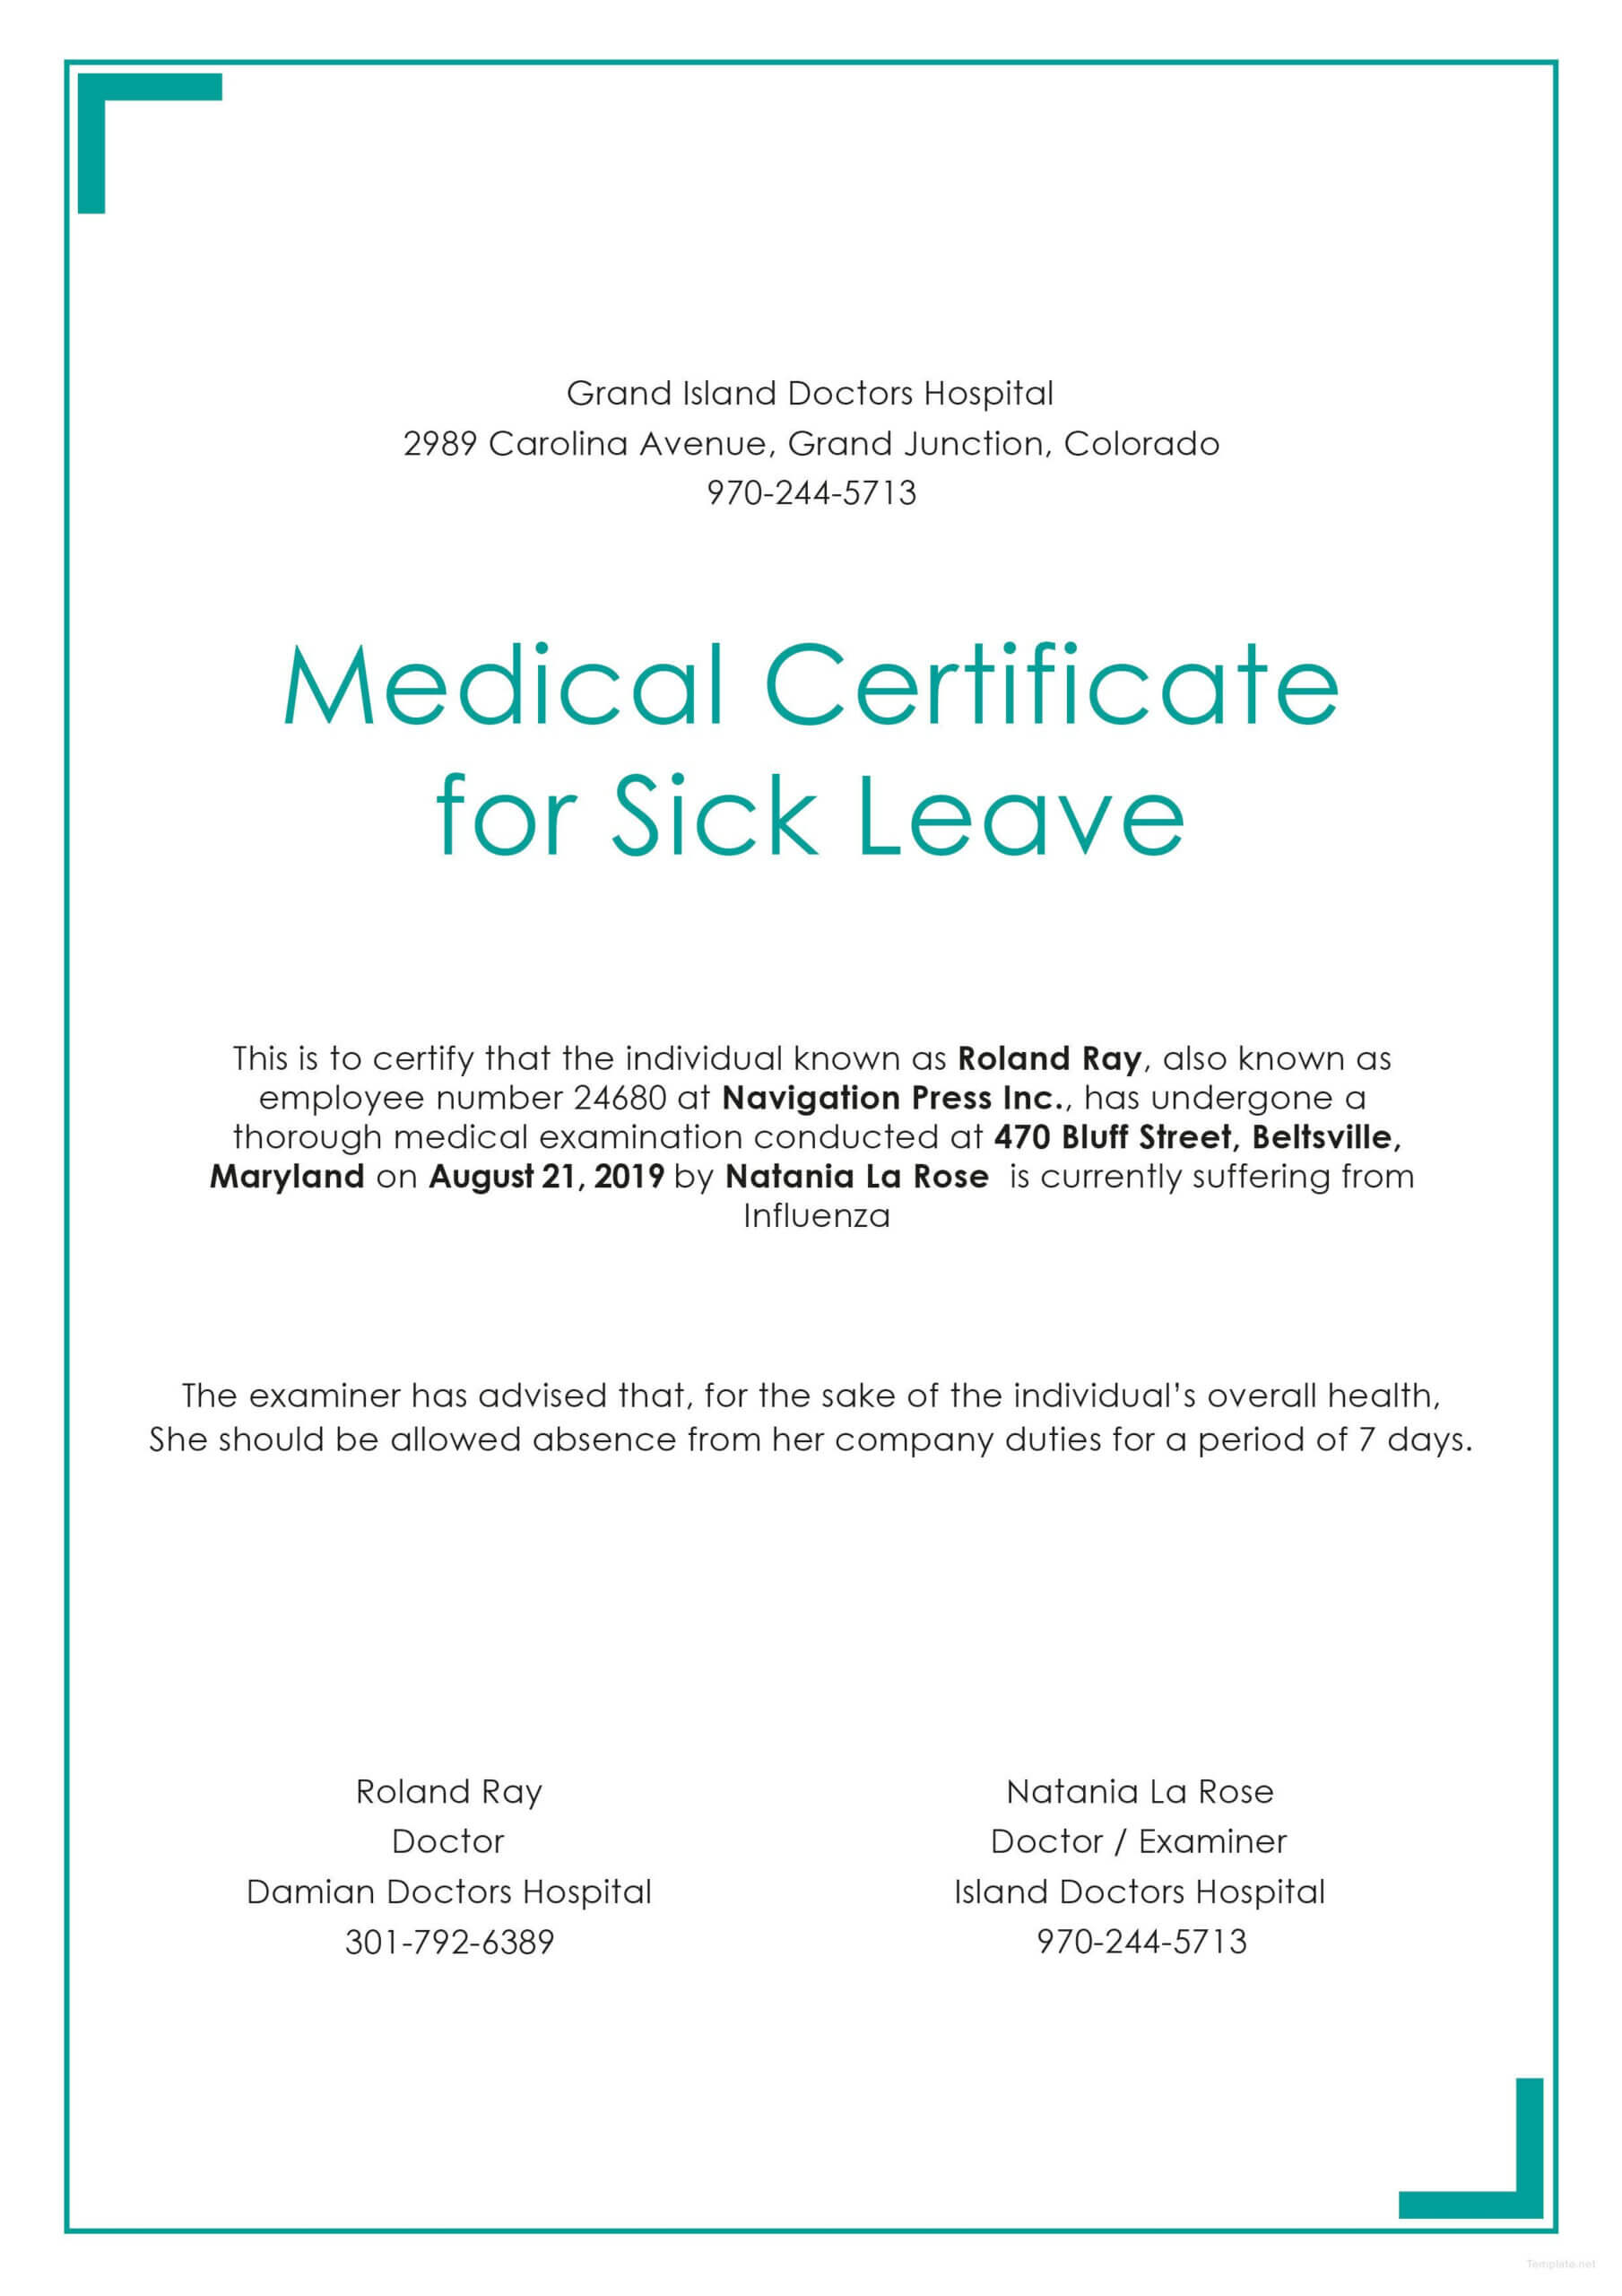 Free Medical Certificate For Sick Leave | Medical Within Free Fake Medical Certificate Template